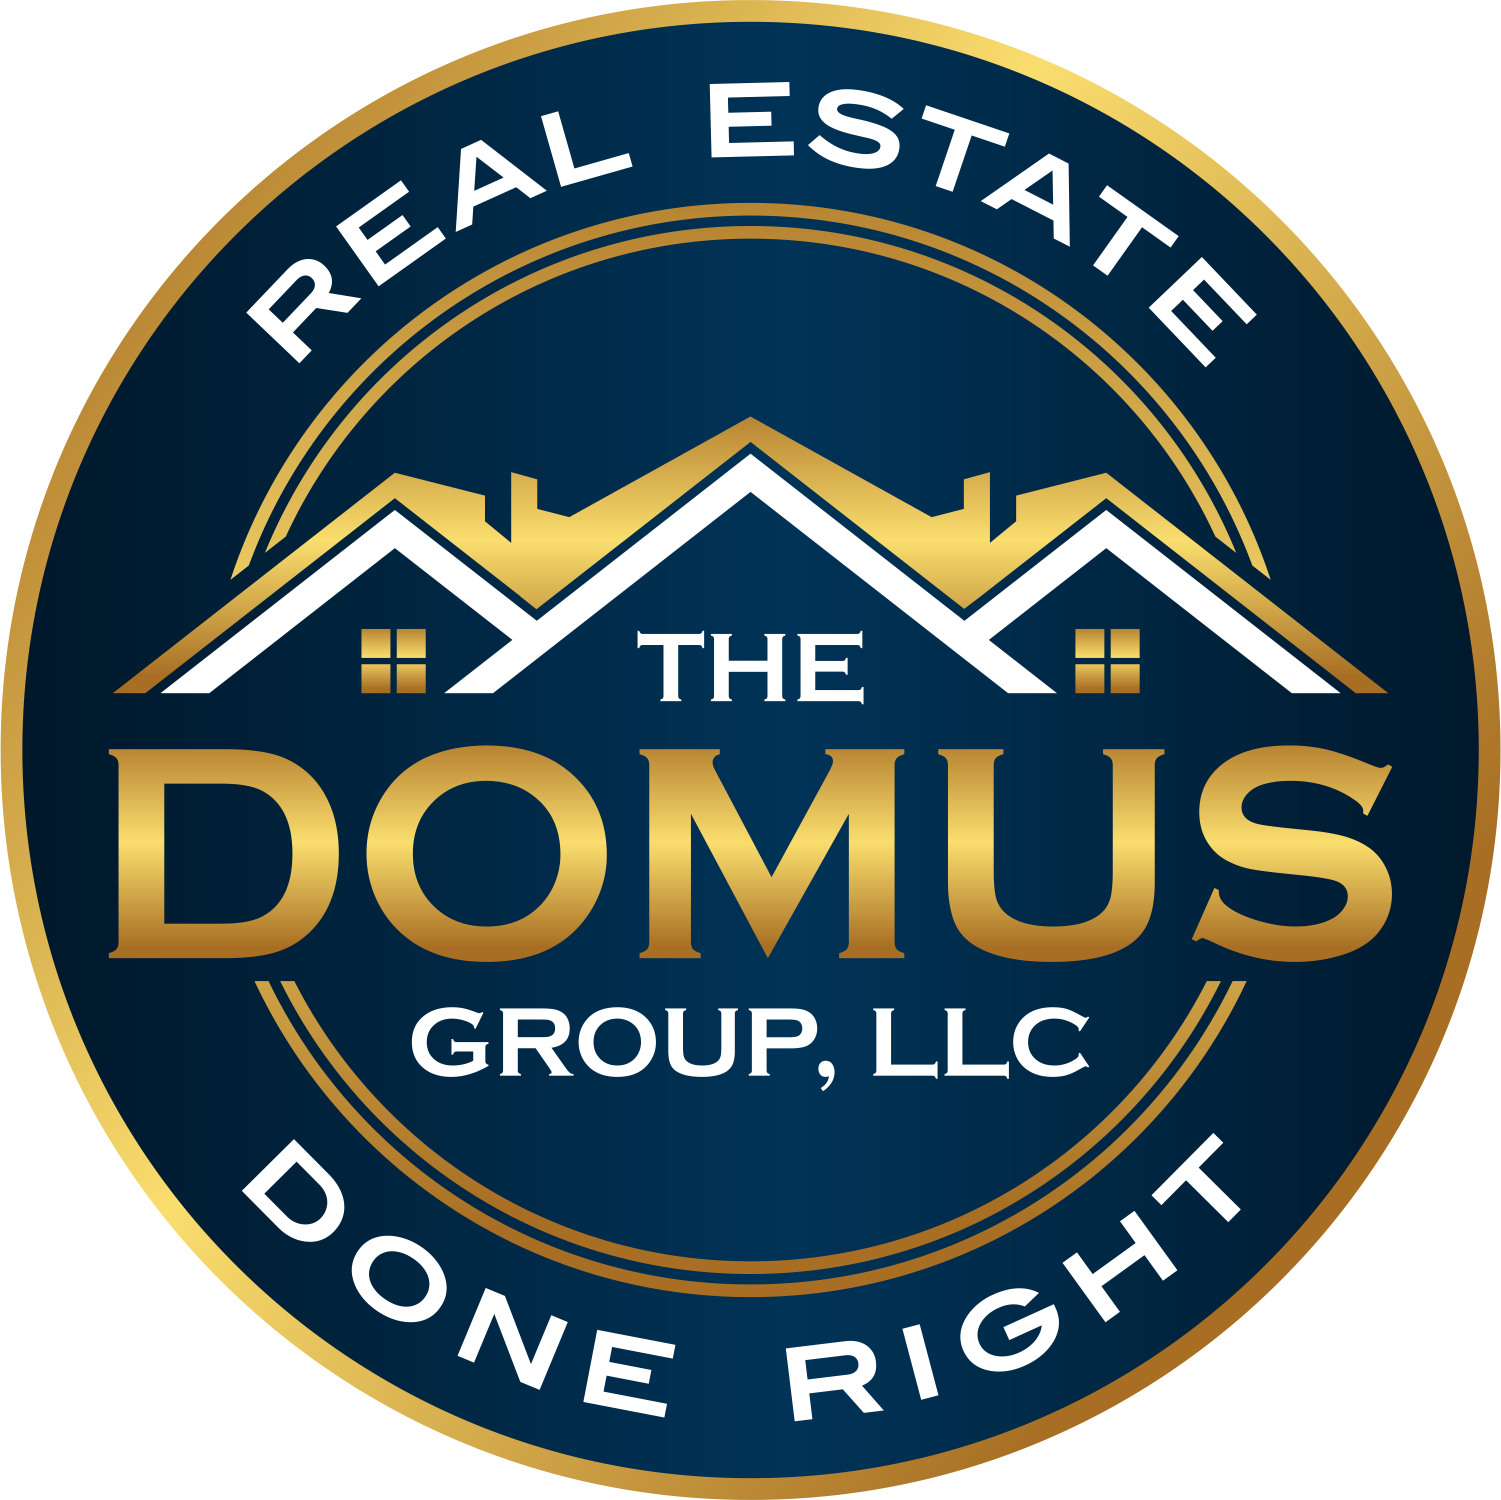 The Domus Group